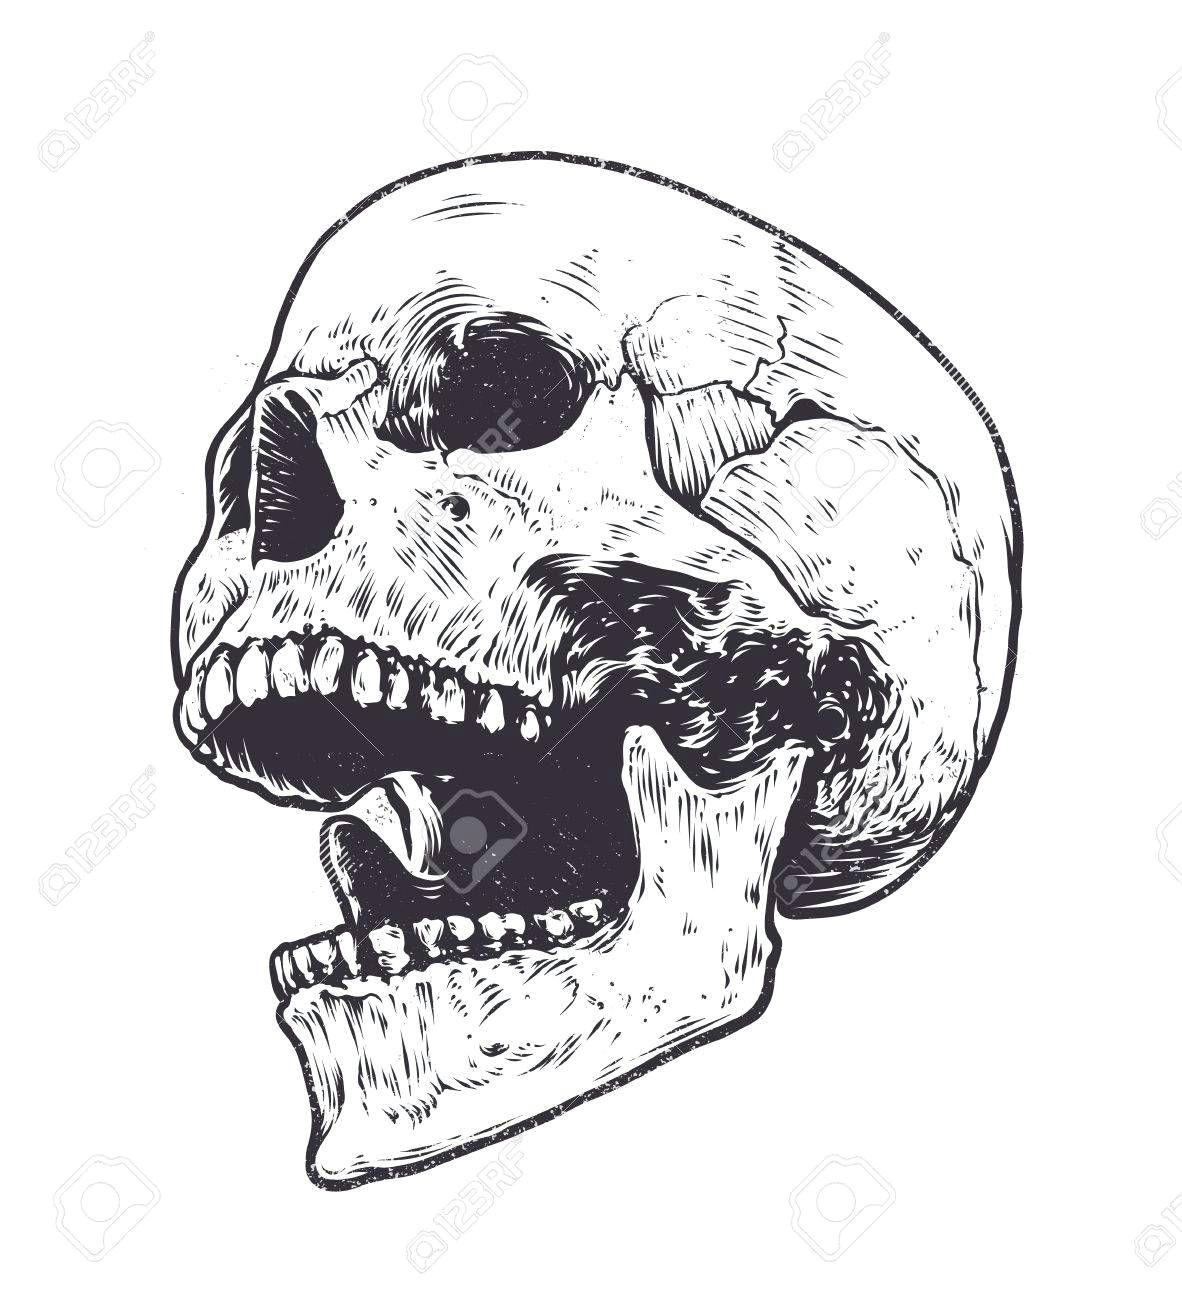 image result for skull open mouth drawing